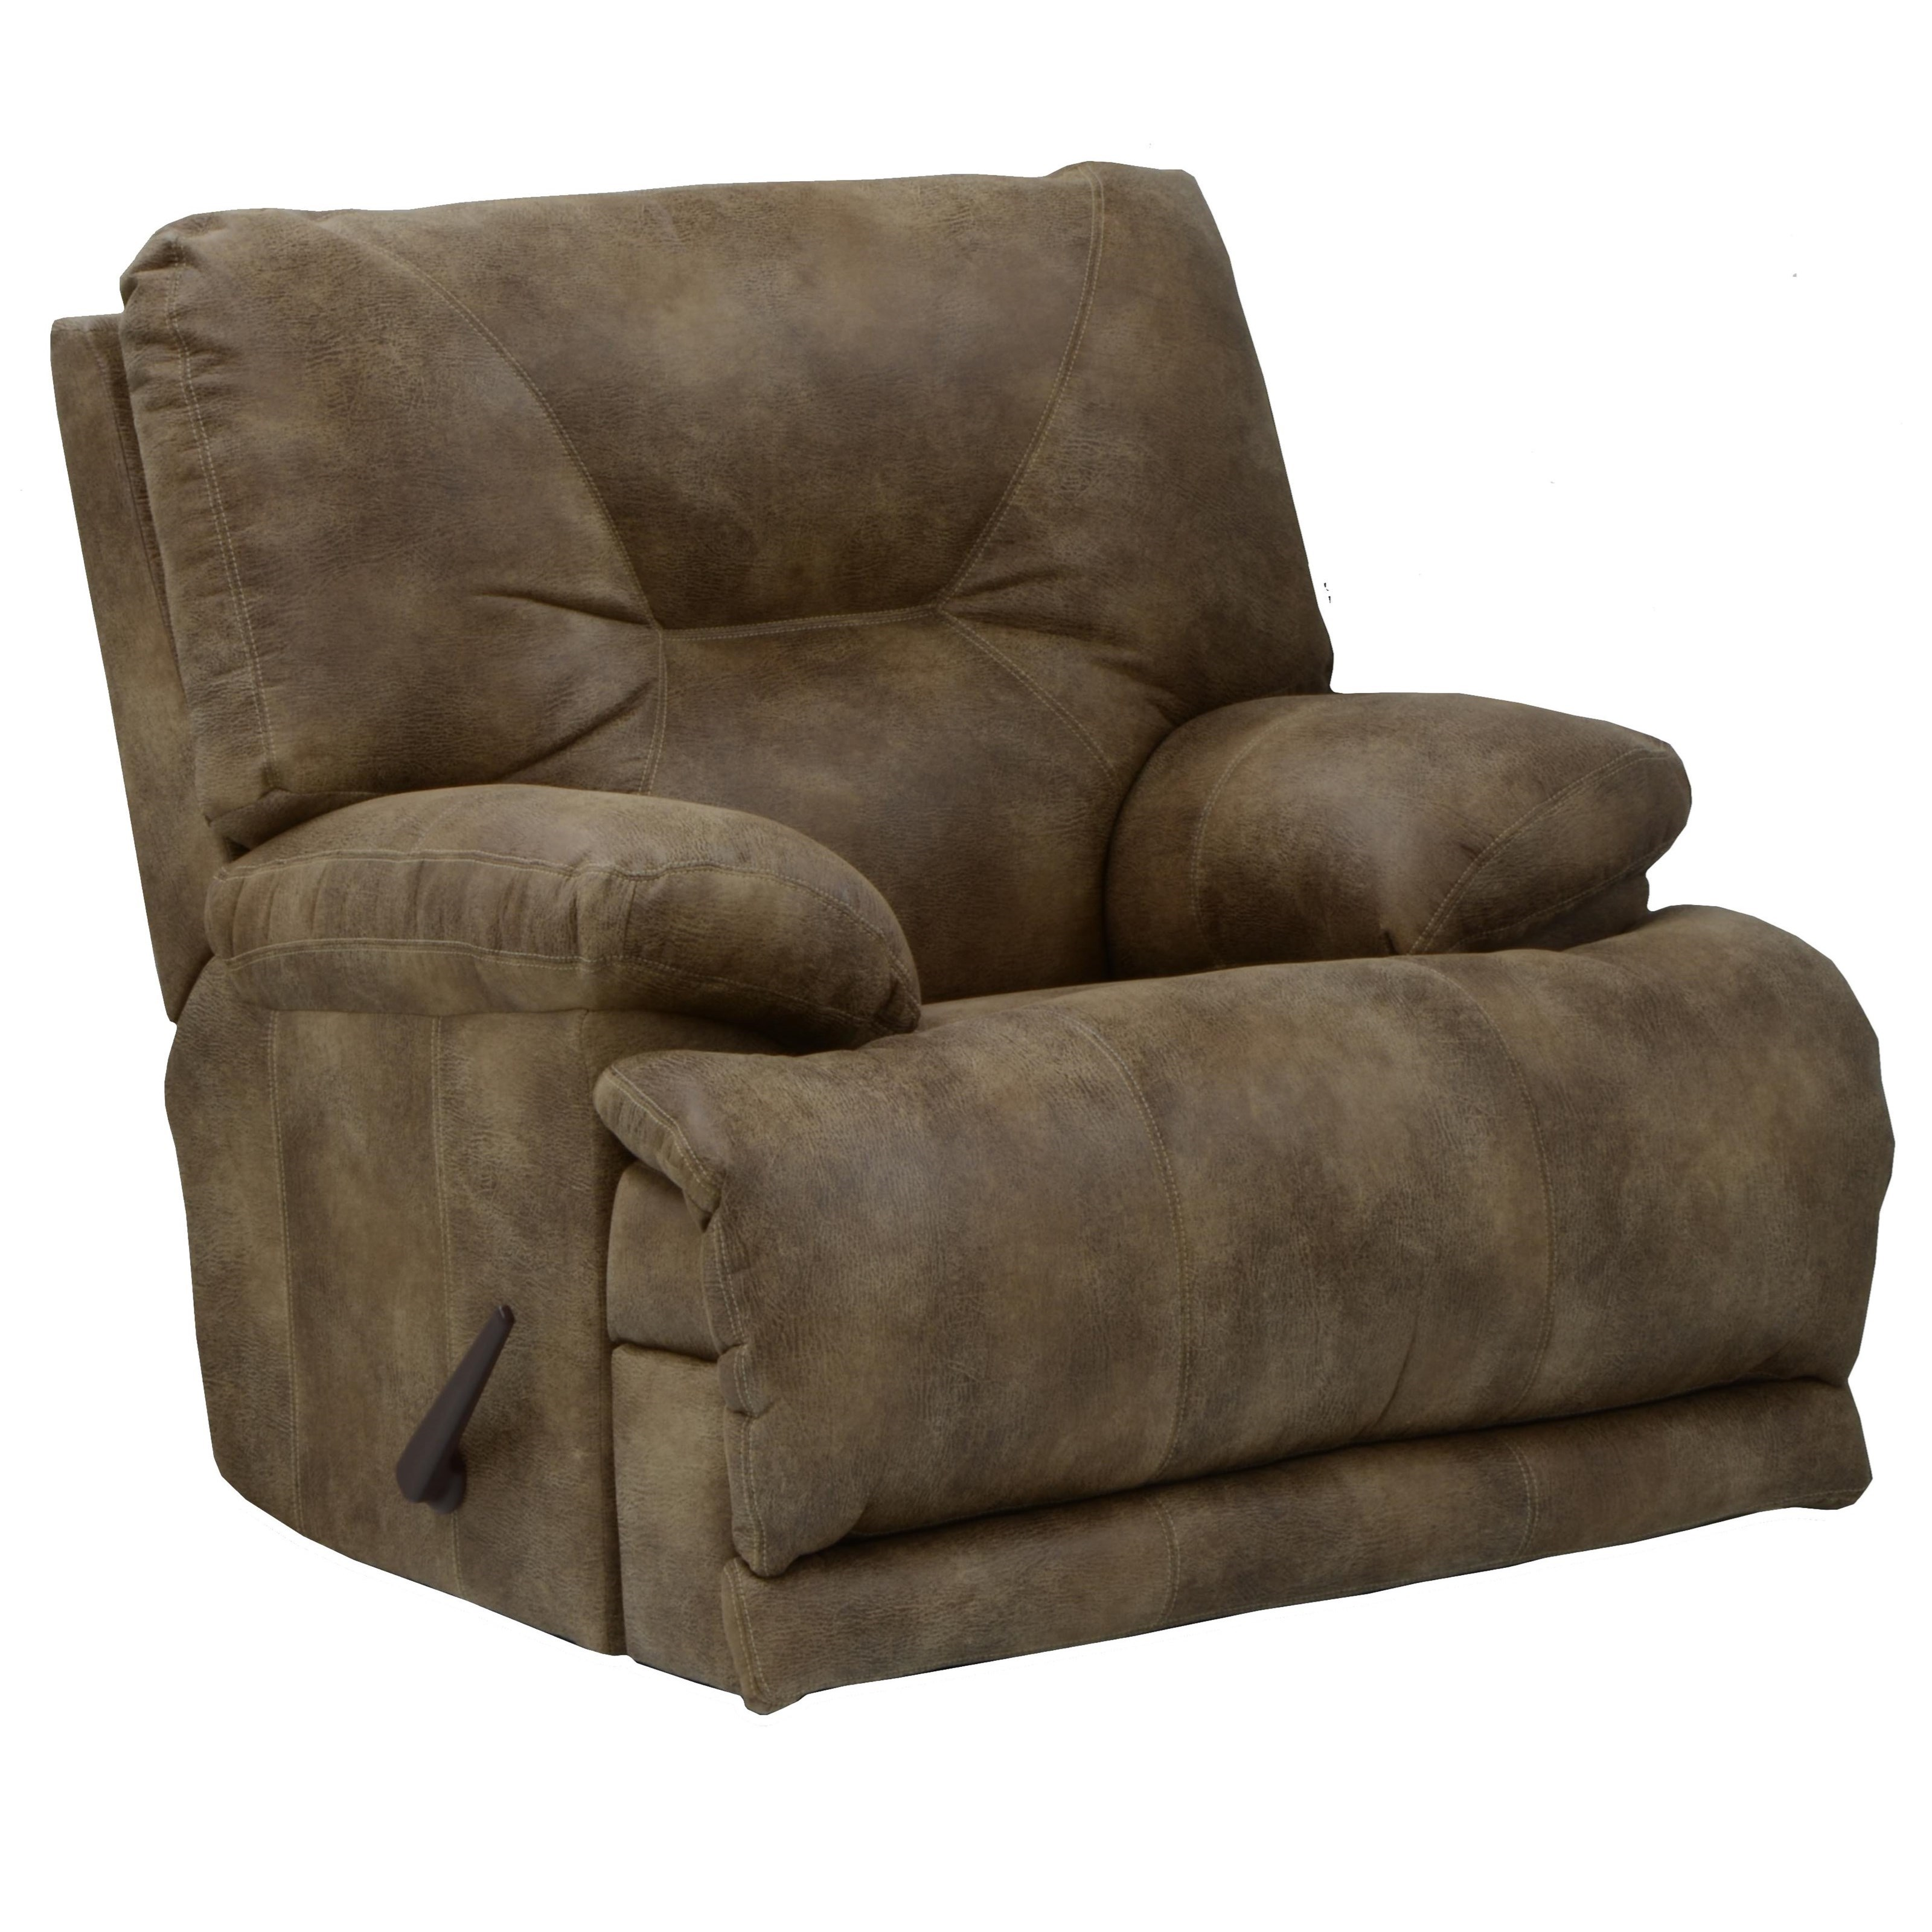 Voyager Lay Flat Recliner by Catnapper at Northeast Factory Direct